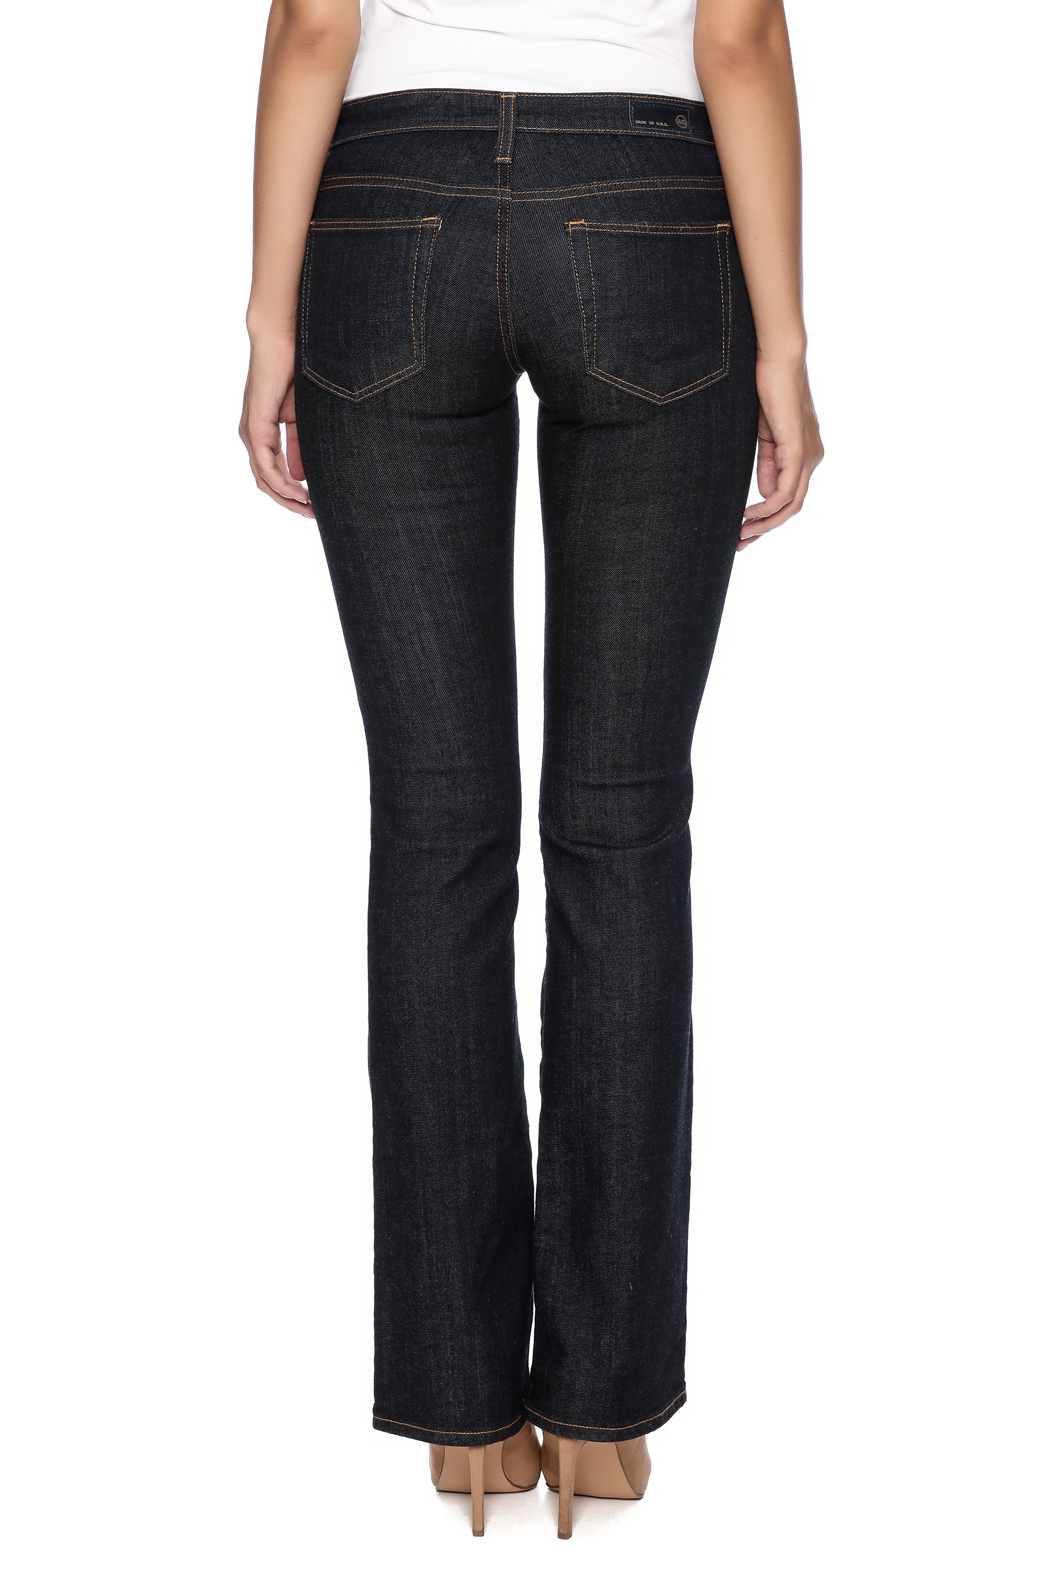 AG Adriano Goldschmied Olivia Boot Cut - Back Cropped Image